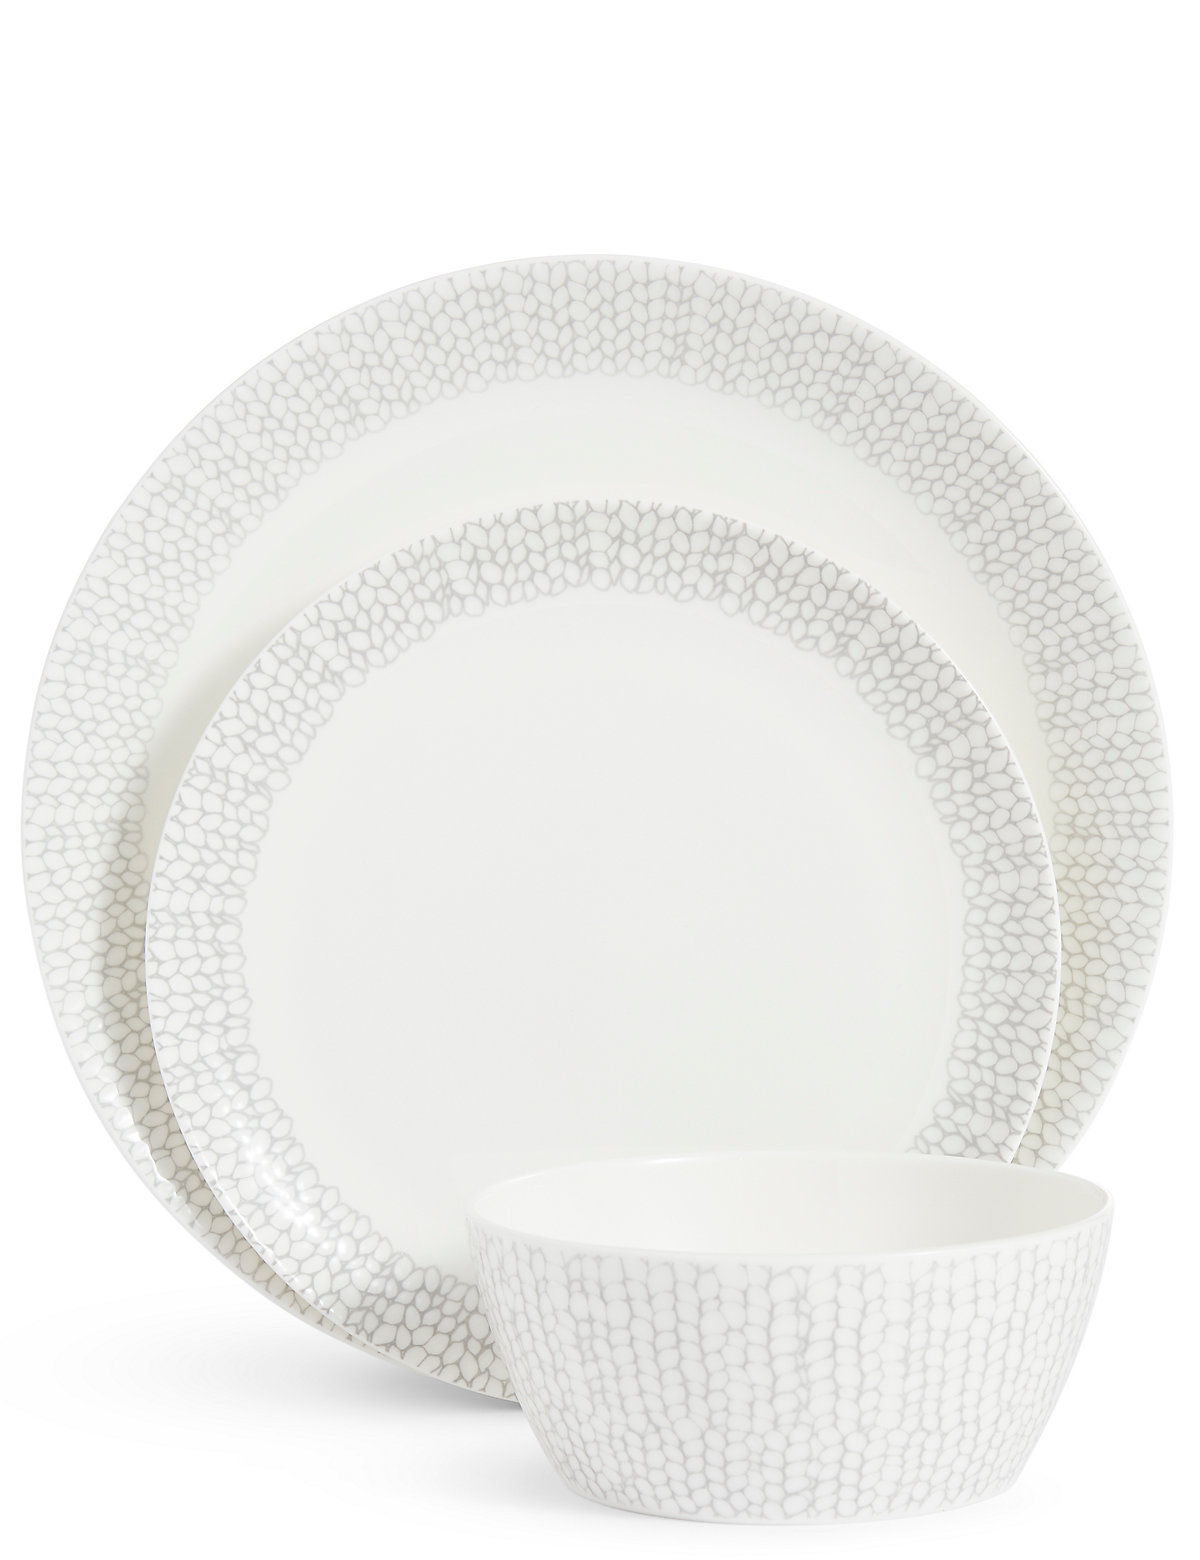 Image of 12 Piece Palermo Coupe Dinner Set